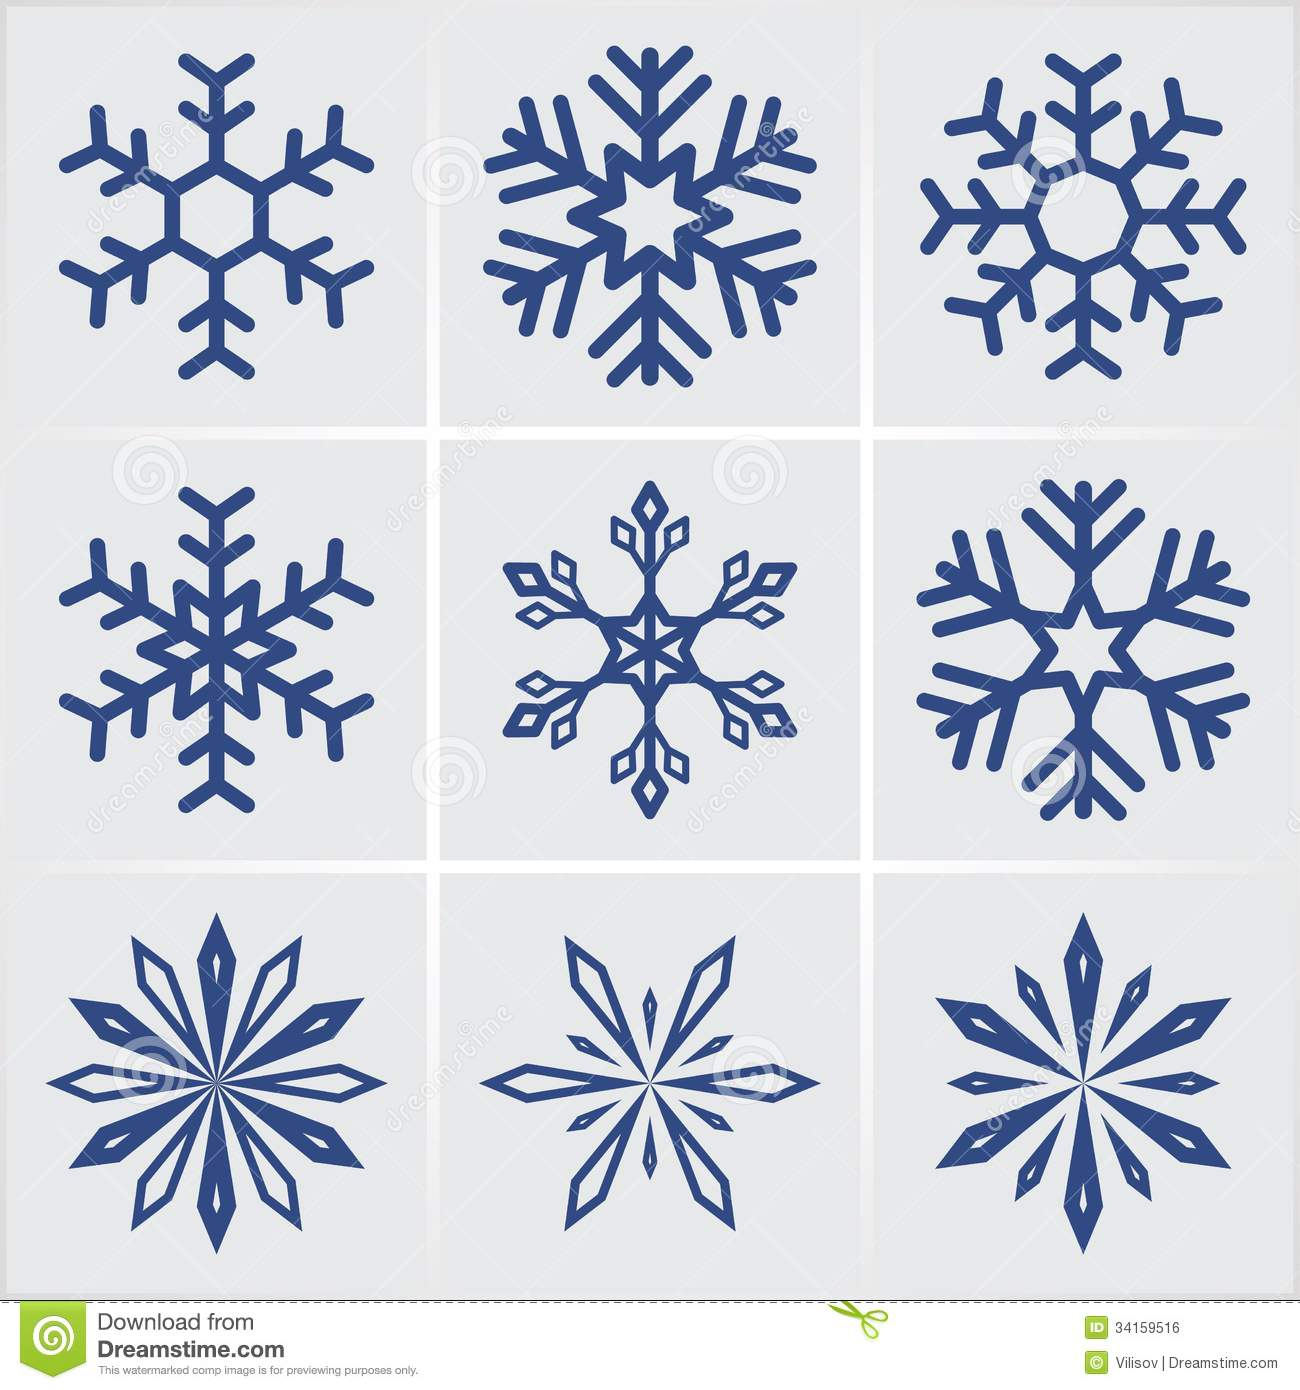 Snowflakes Royalty Free Stock Image - Image: 34159516